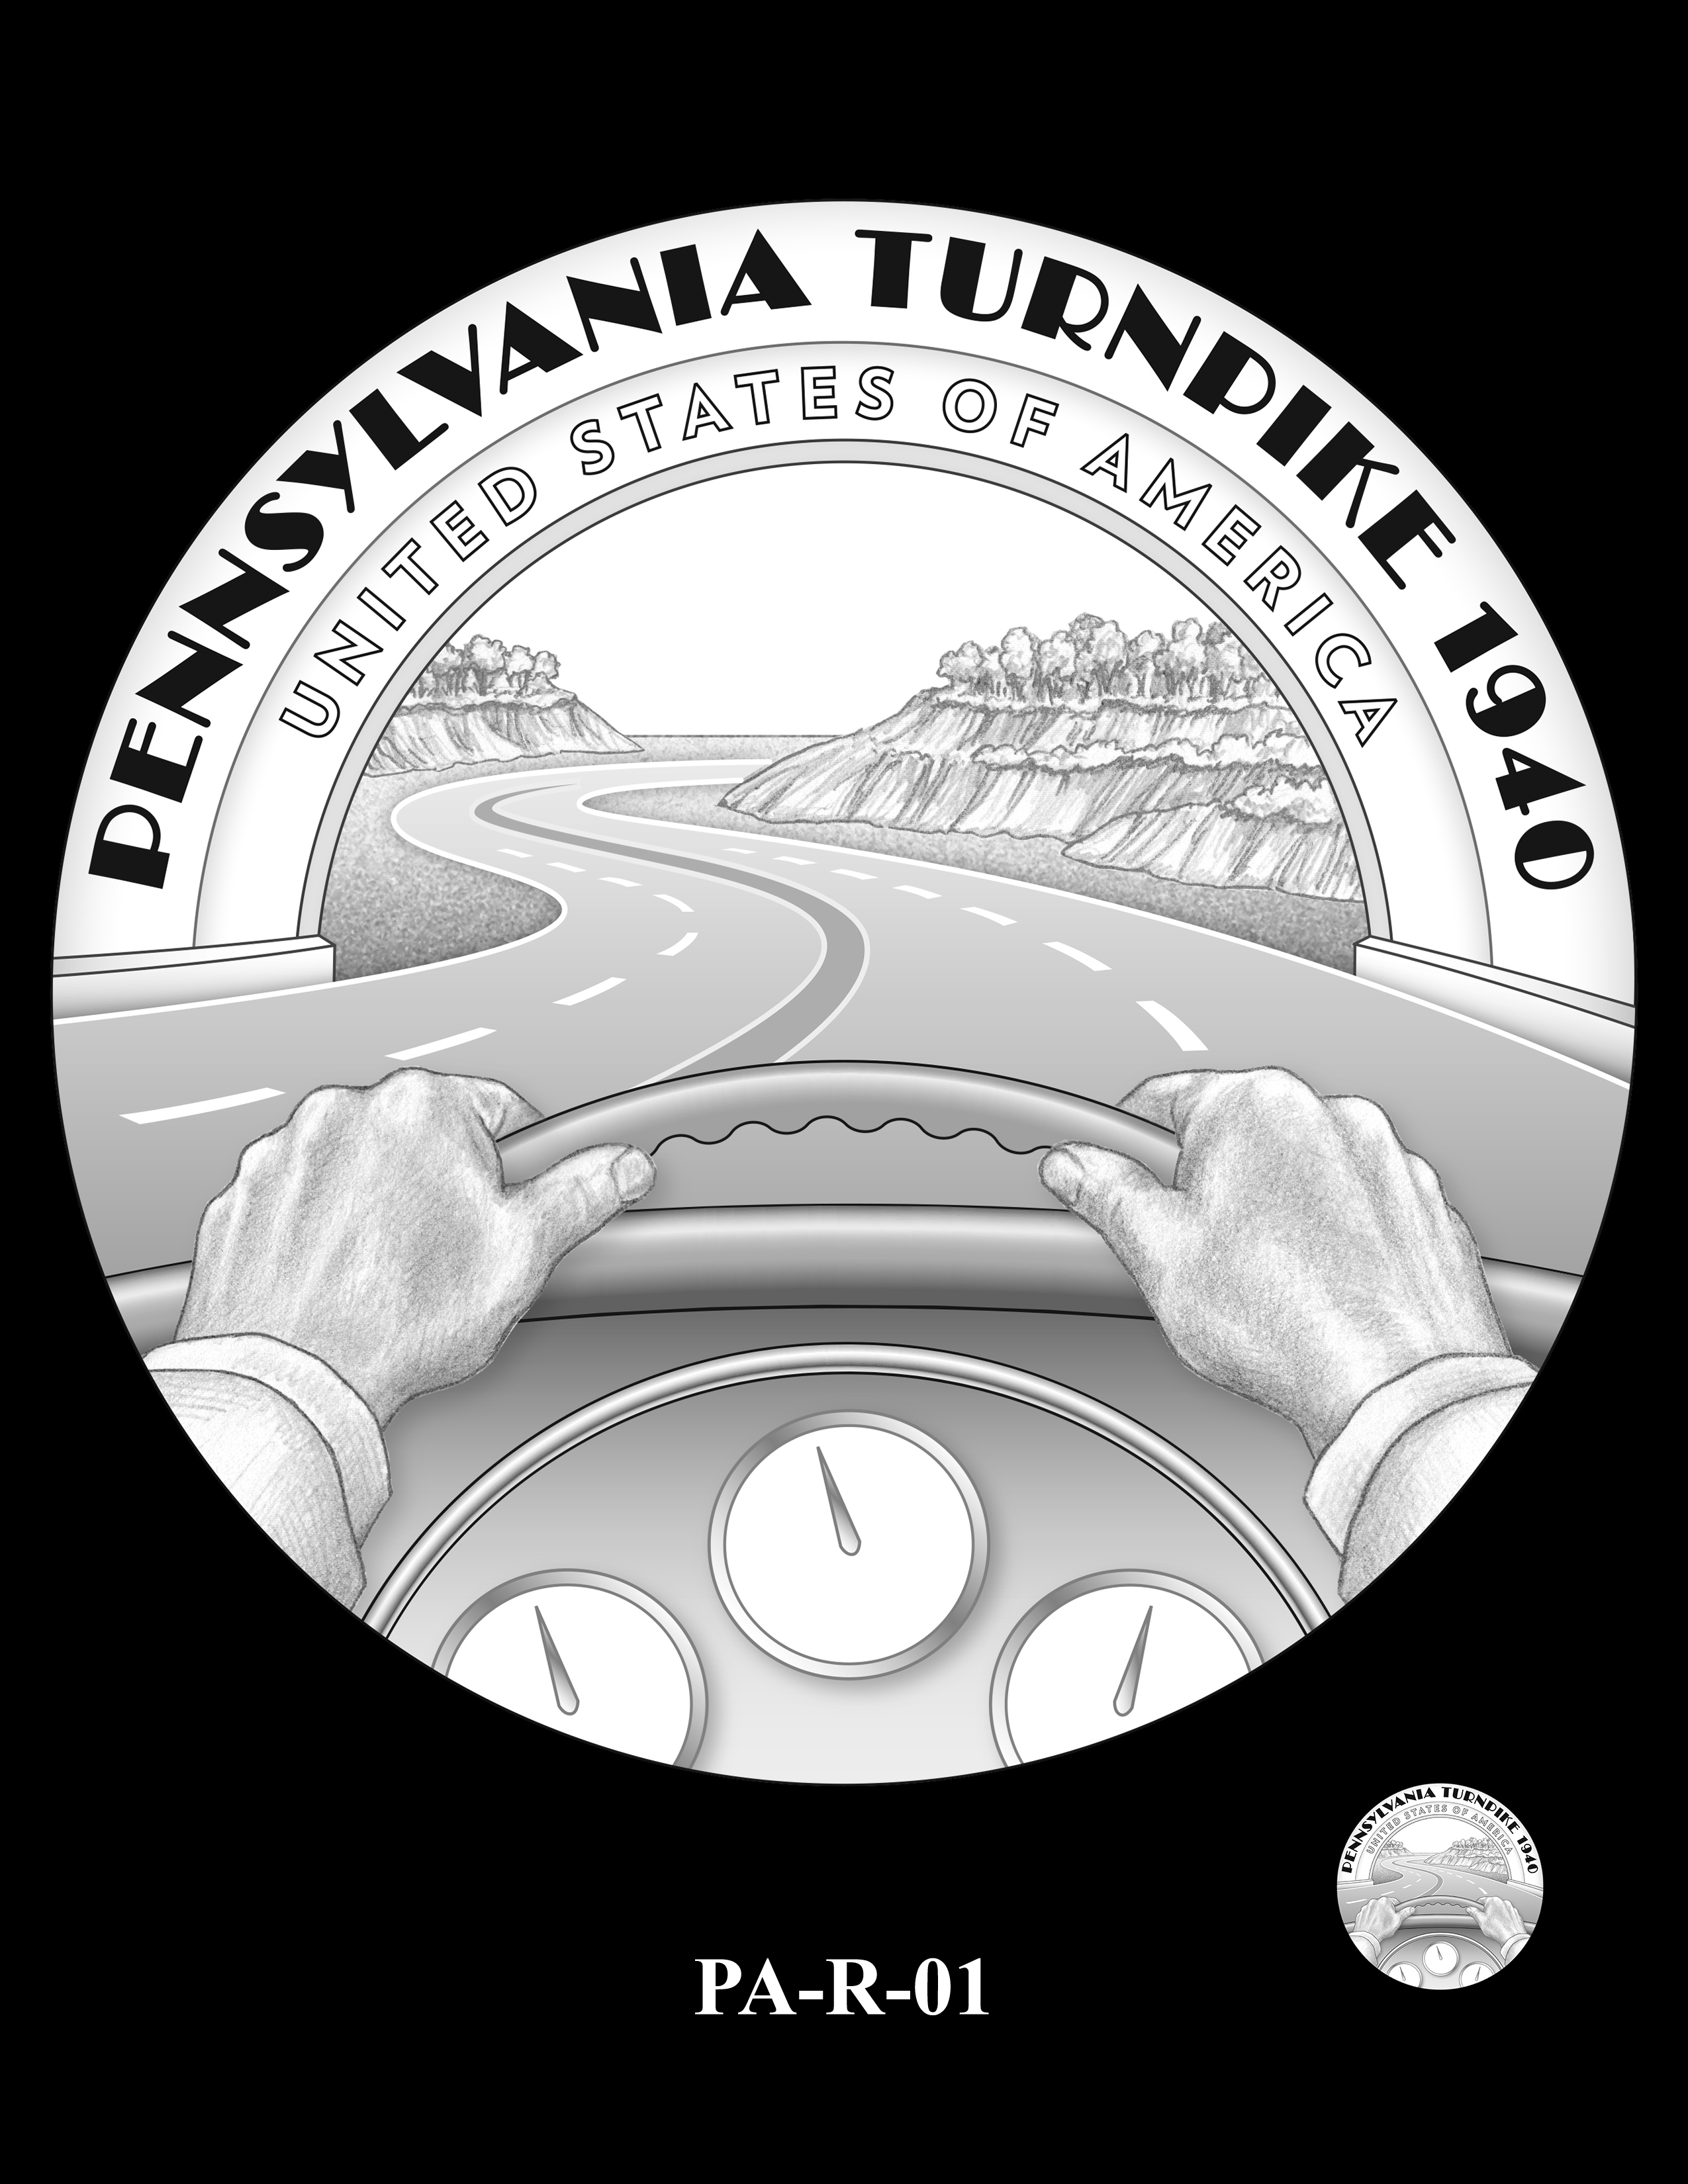 PA-R-01 -- 2019 American Innovation $1 Coin Program